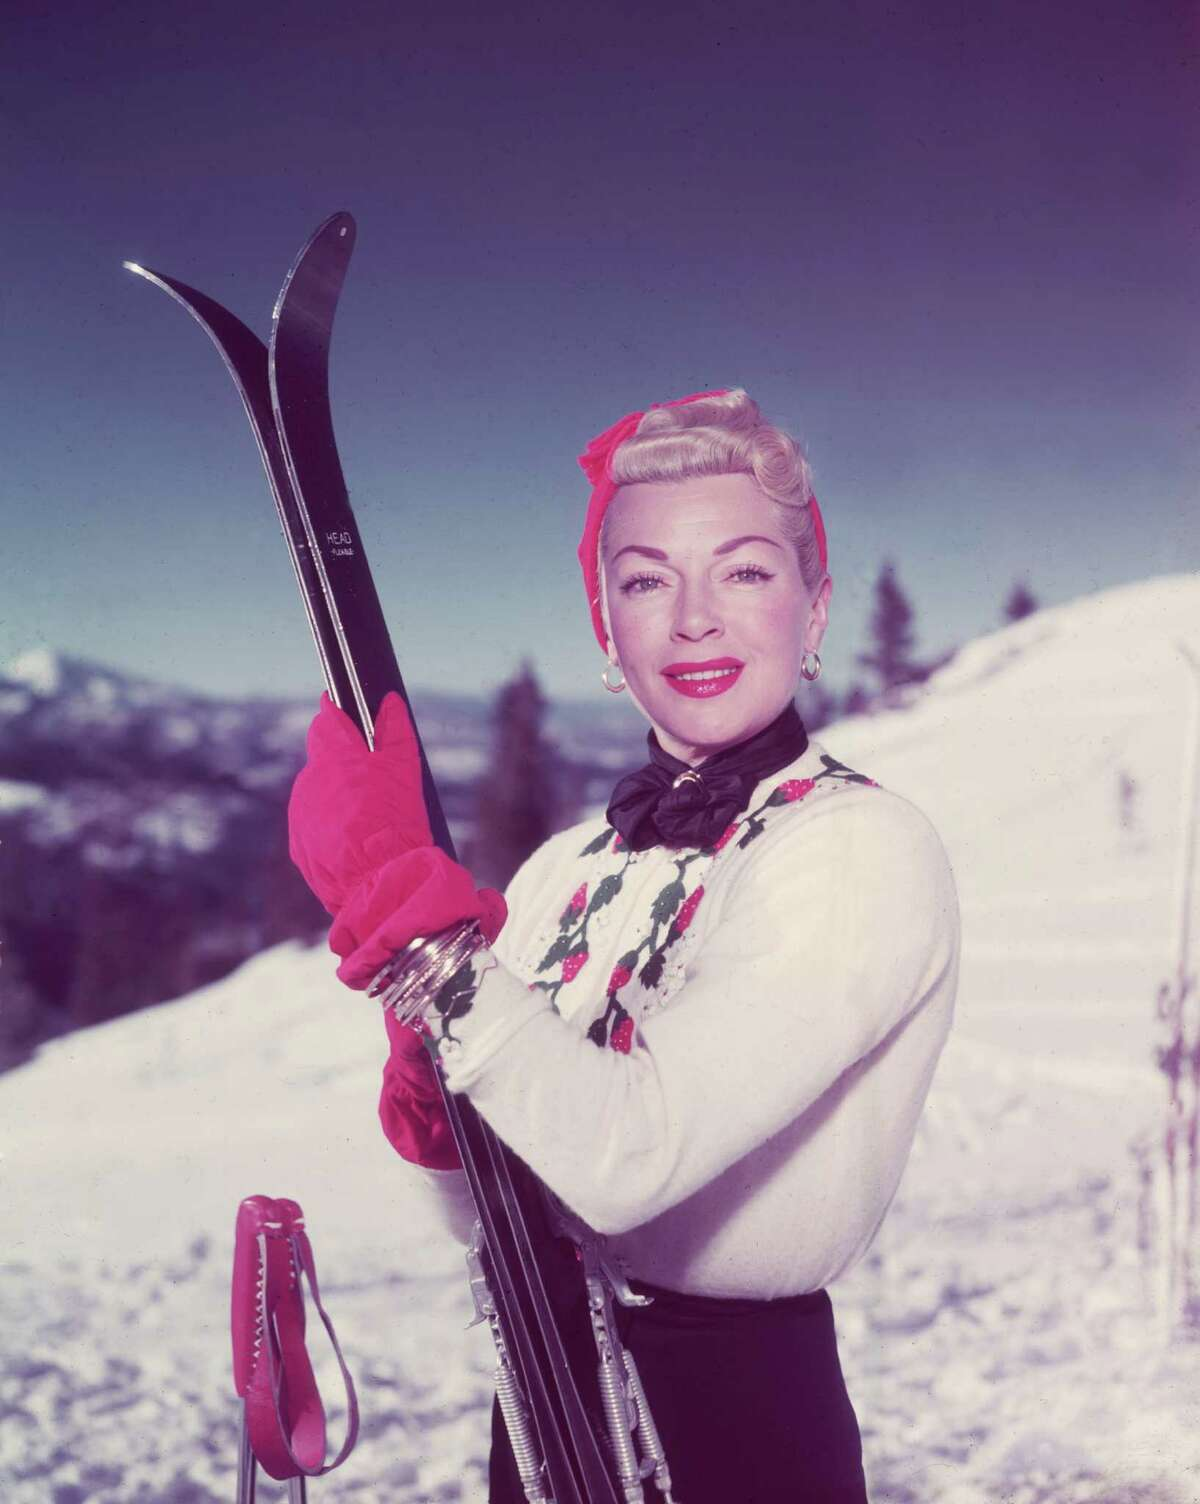 That'd be Lana Turner. The sweater is find, but the matching gloves-ski poles combo is really something.